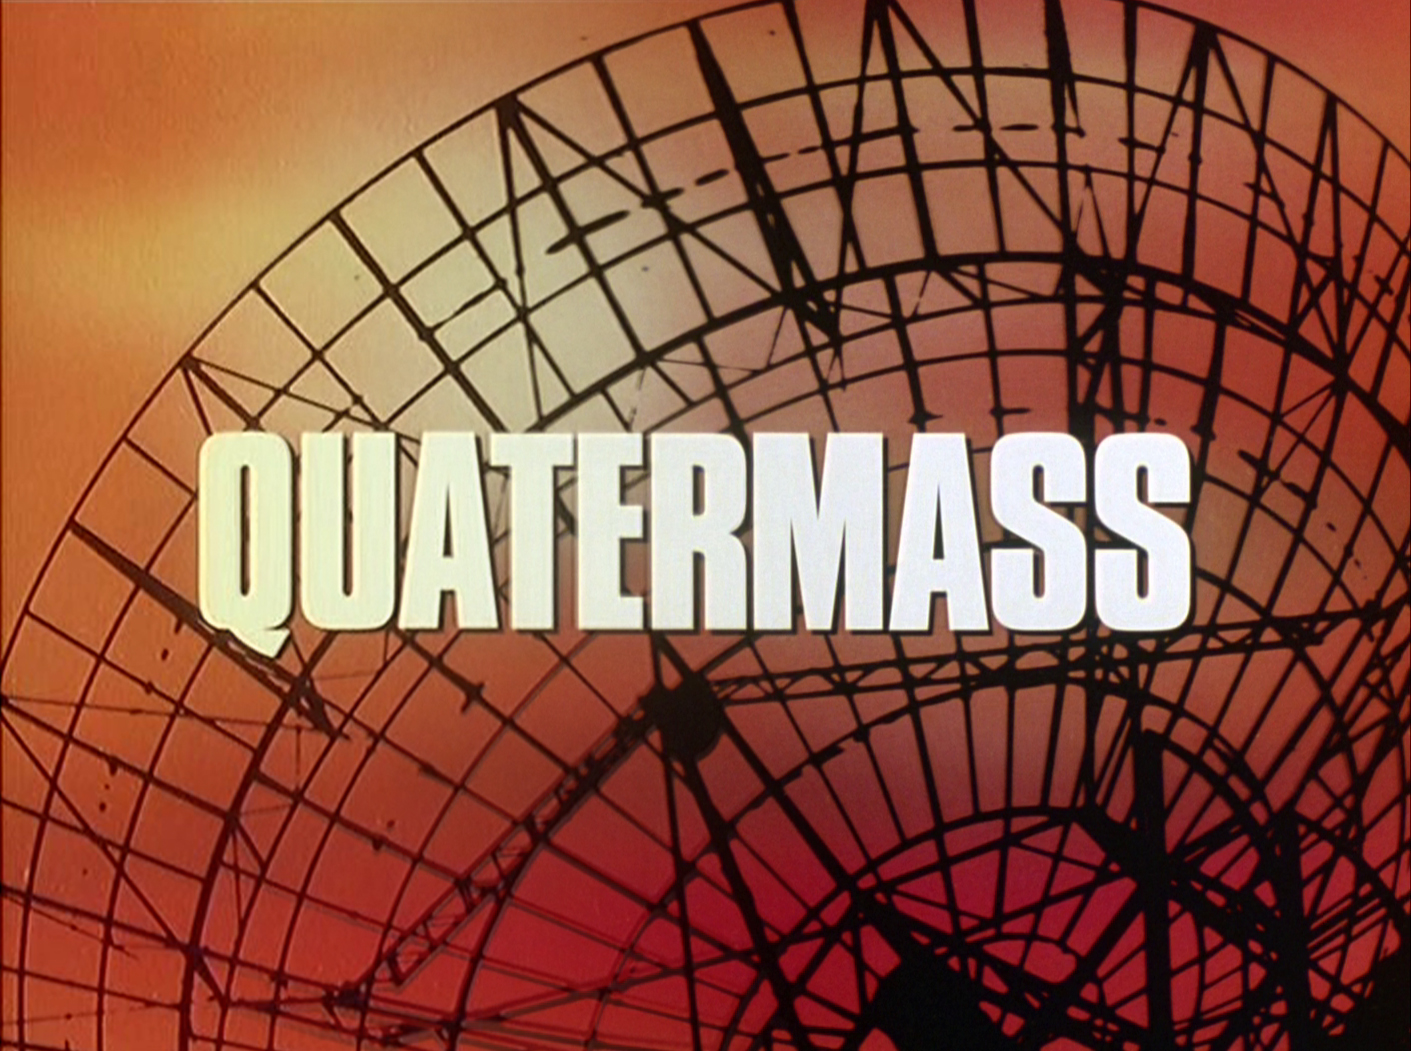 Your Chance to Watch Nigel Kneale's Quatermass (1979), A Major Influence on Doctor Who